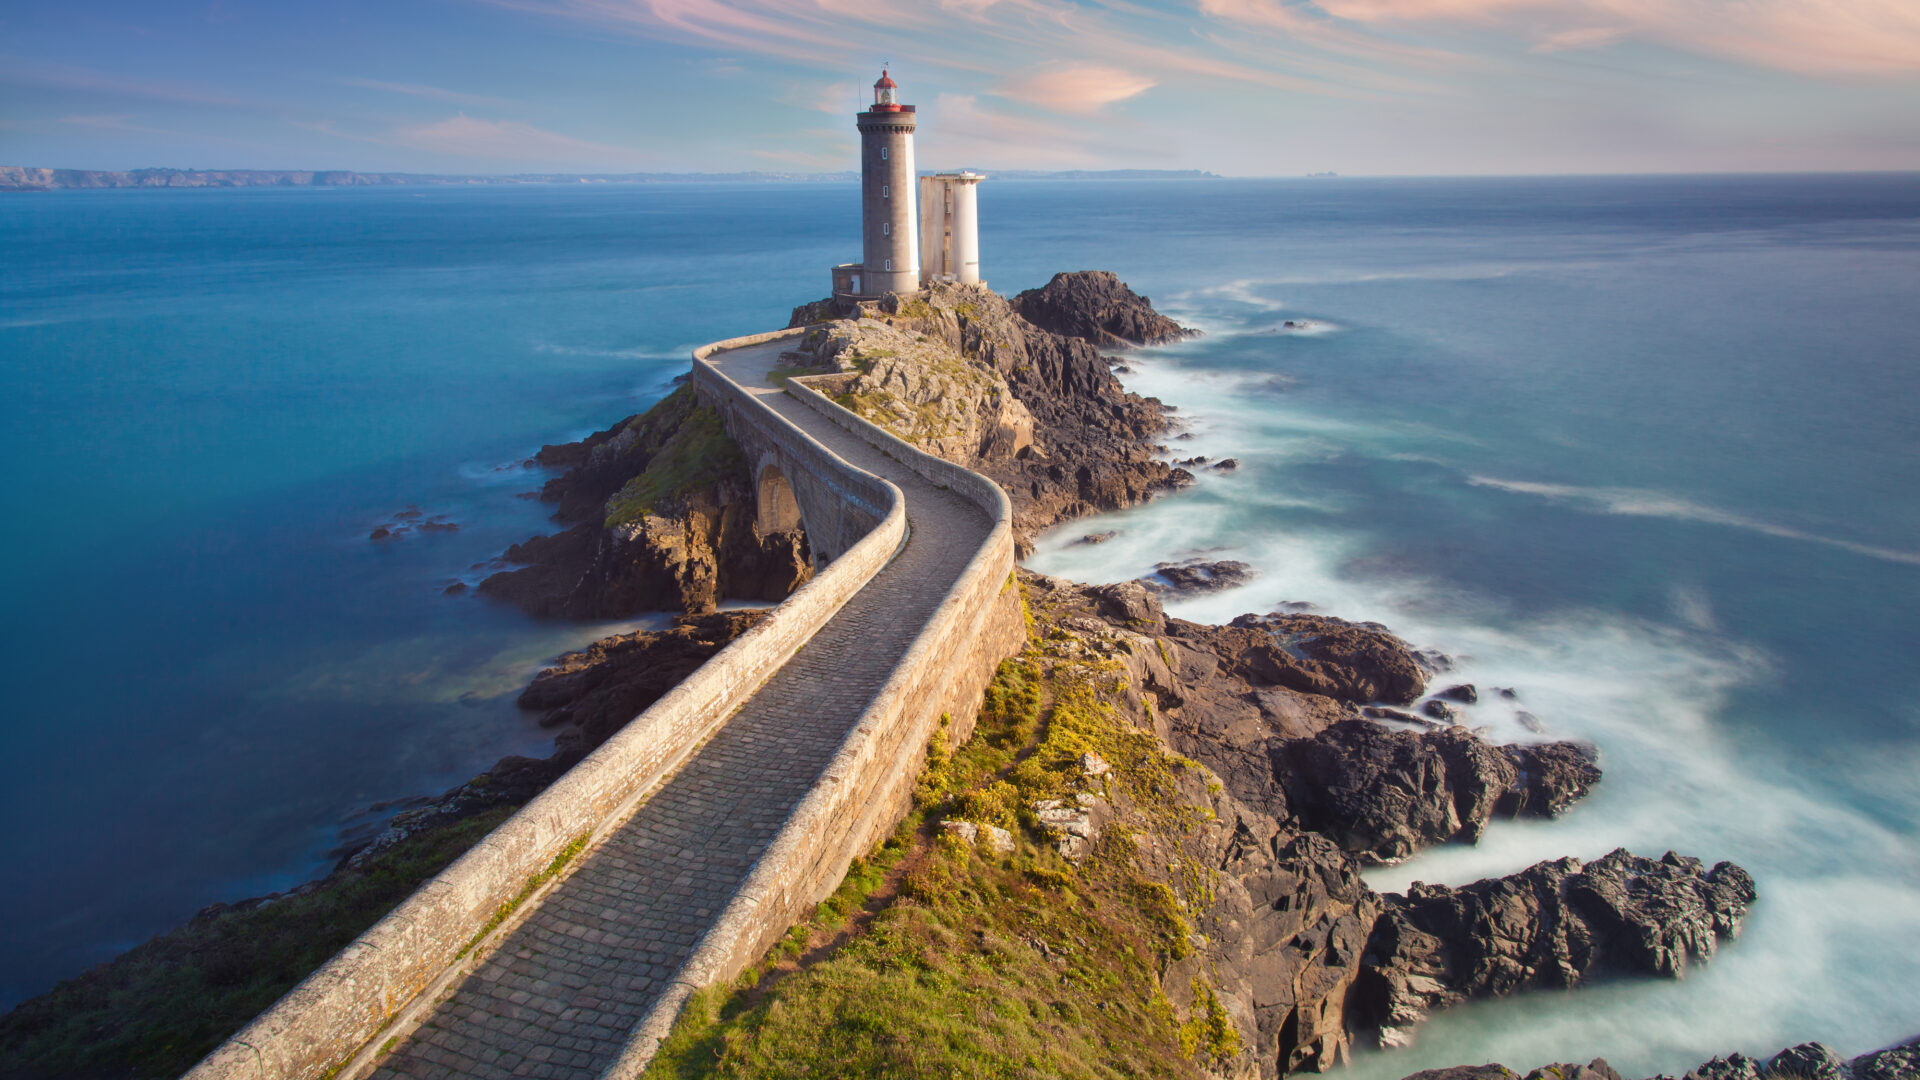 View of a lighthouse near Brest in Brittany